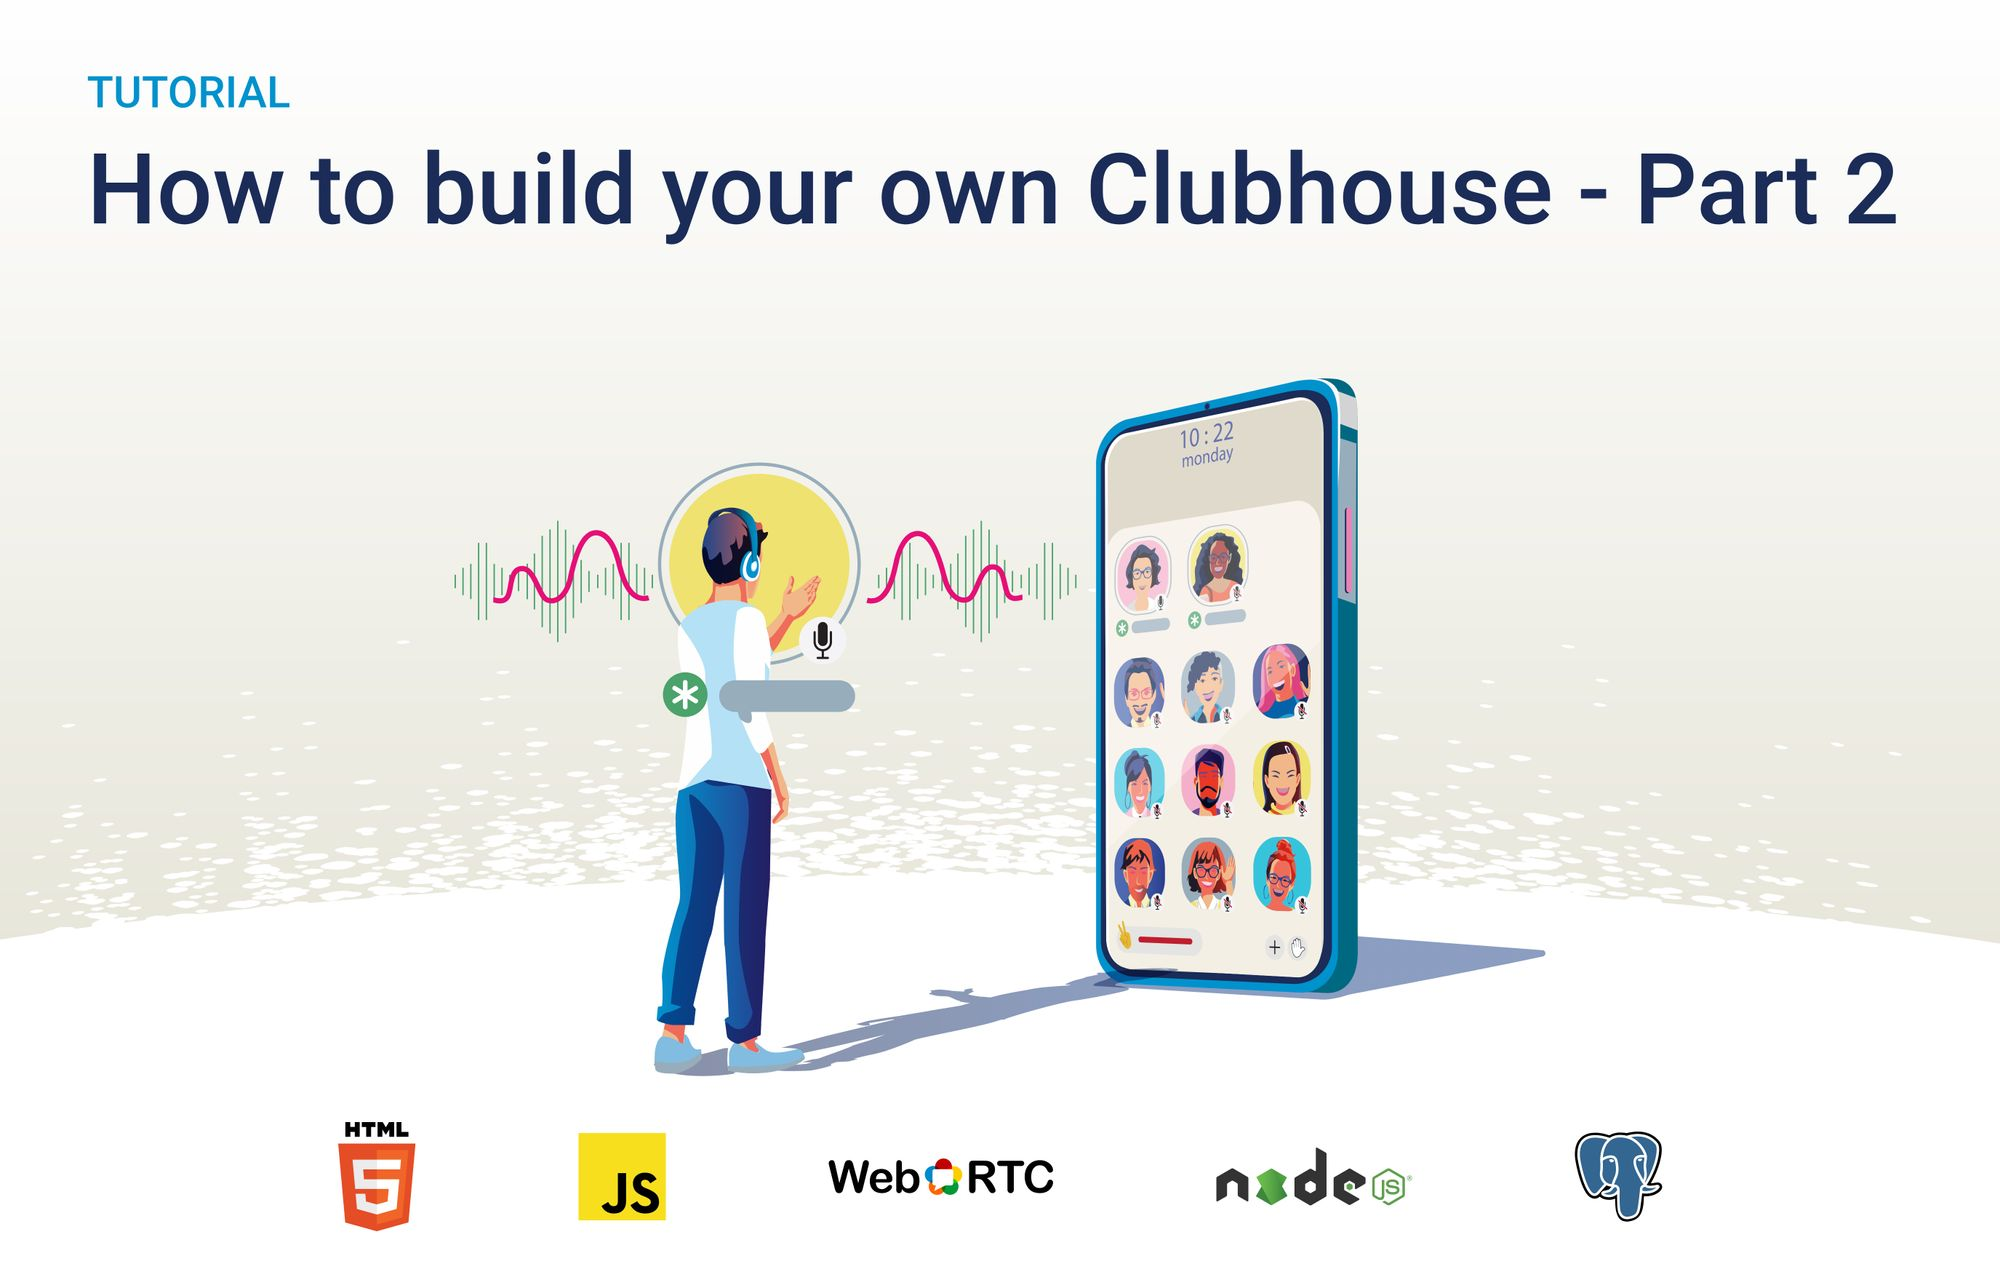 How to build your own Clubhouse - Part 2